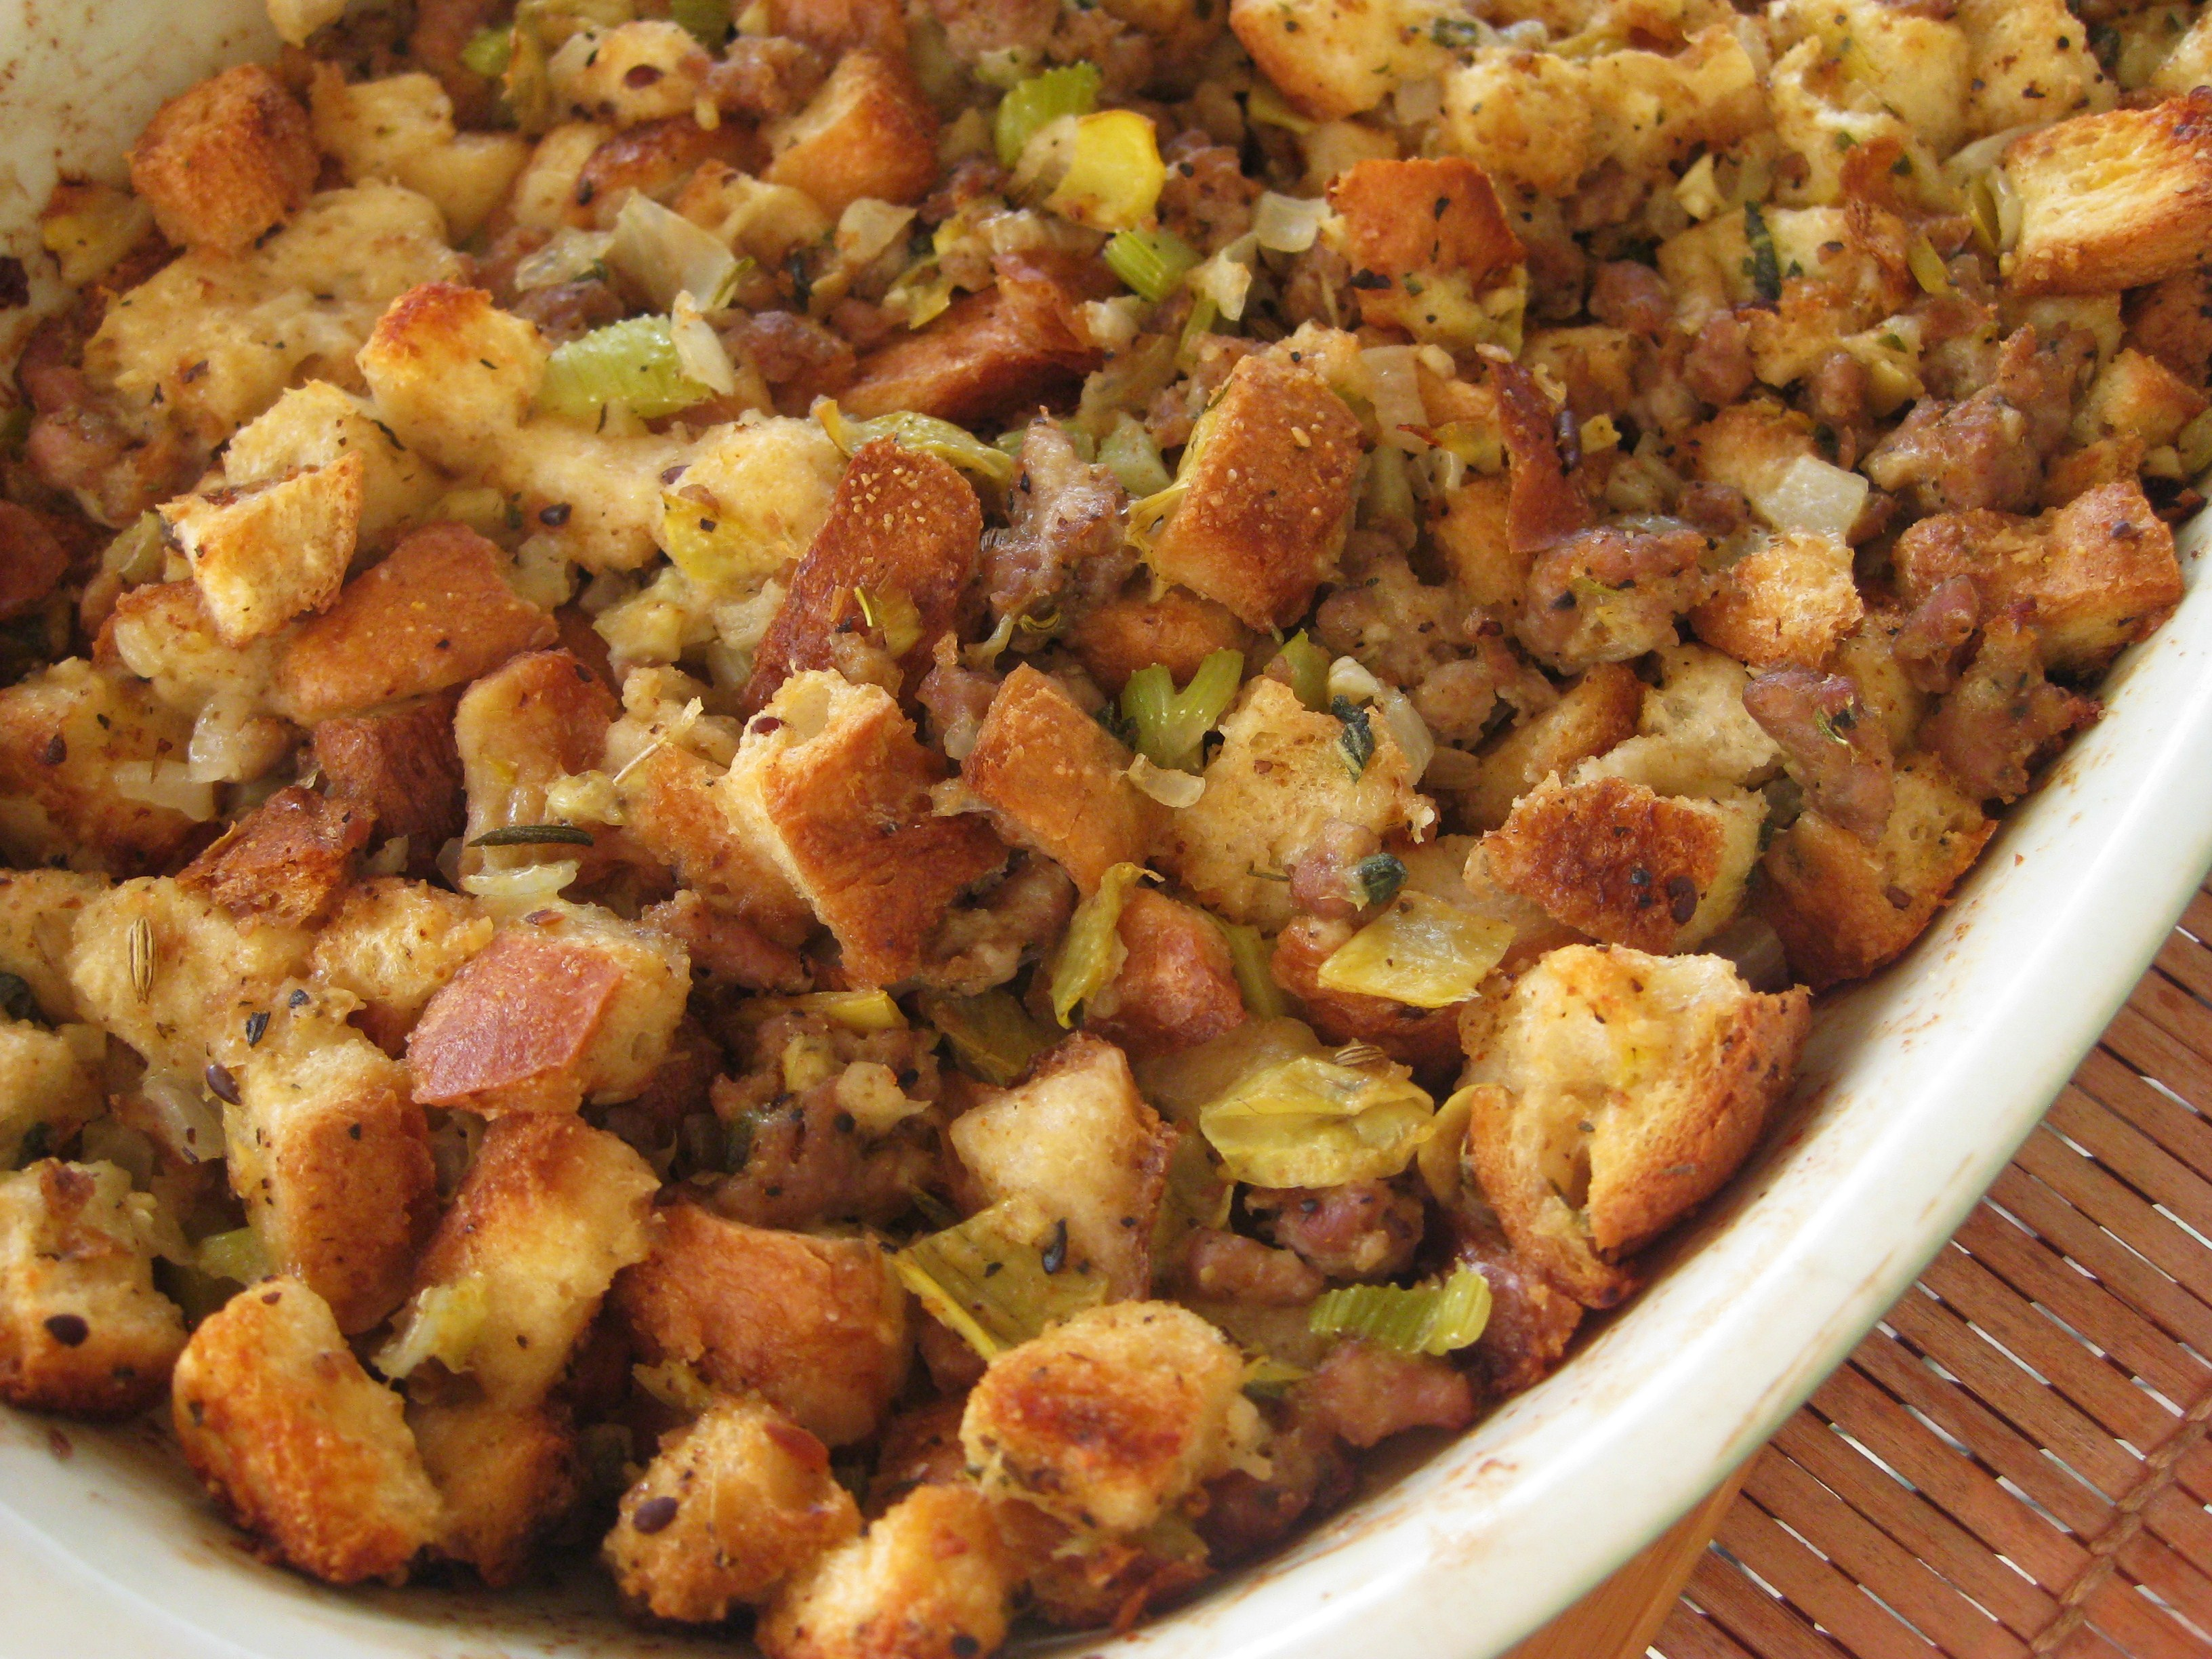 Artichoke, Sausage and Parmesan Stuffing – Savoring Every Bite